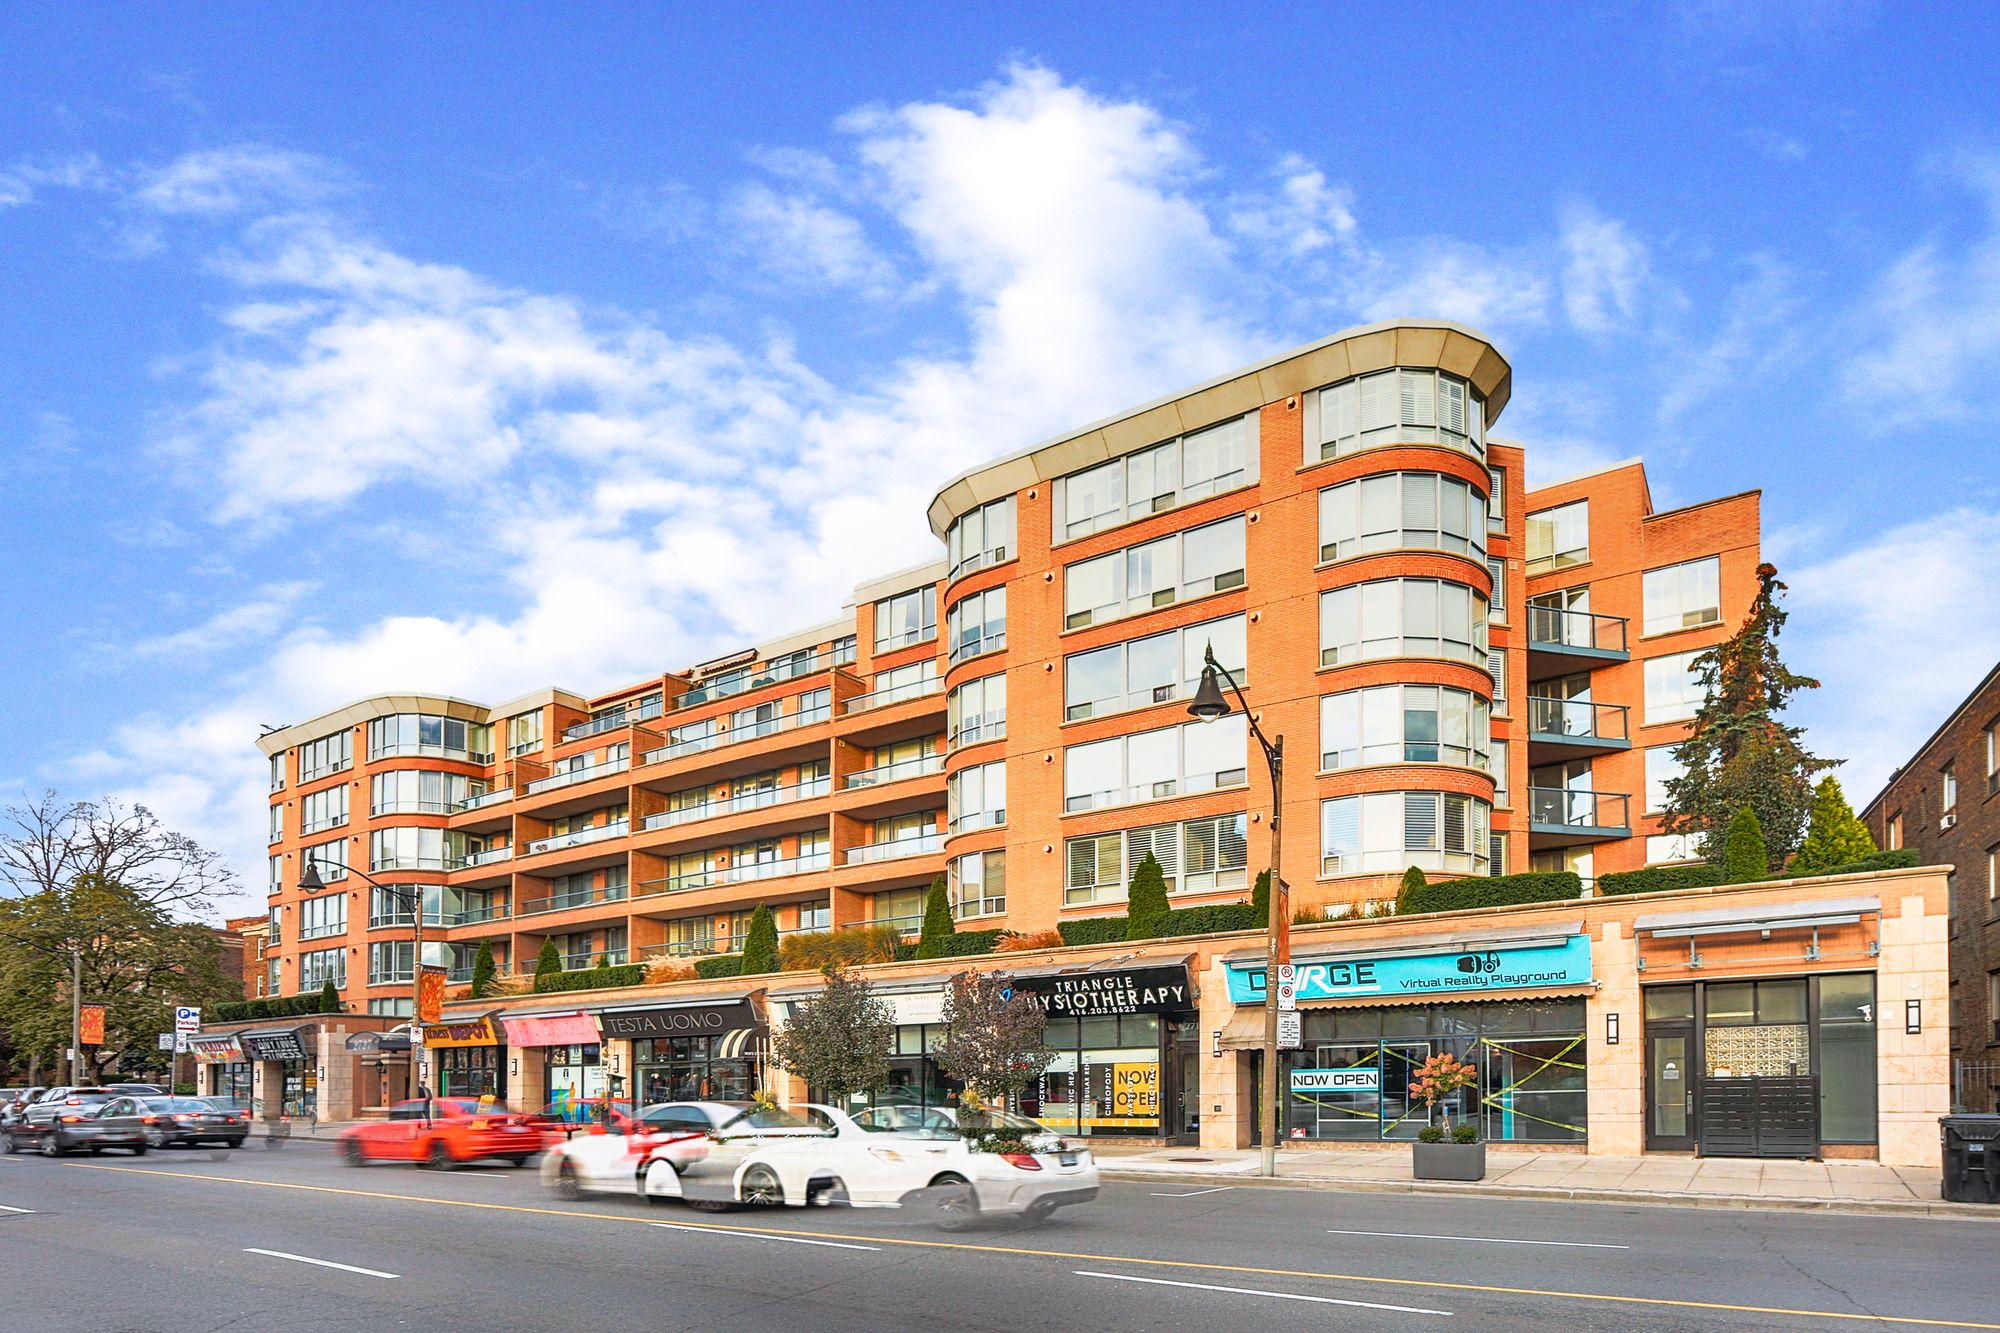 2727 Yonge St. This condo at The Lawrence Park Condominiums is located in  Midtown, Toronto - image #2 of 5 by Strata.ca